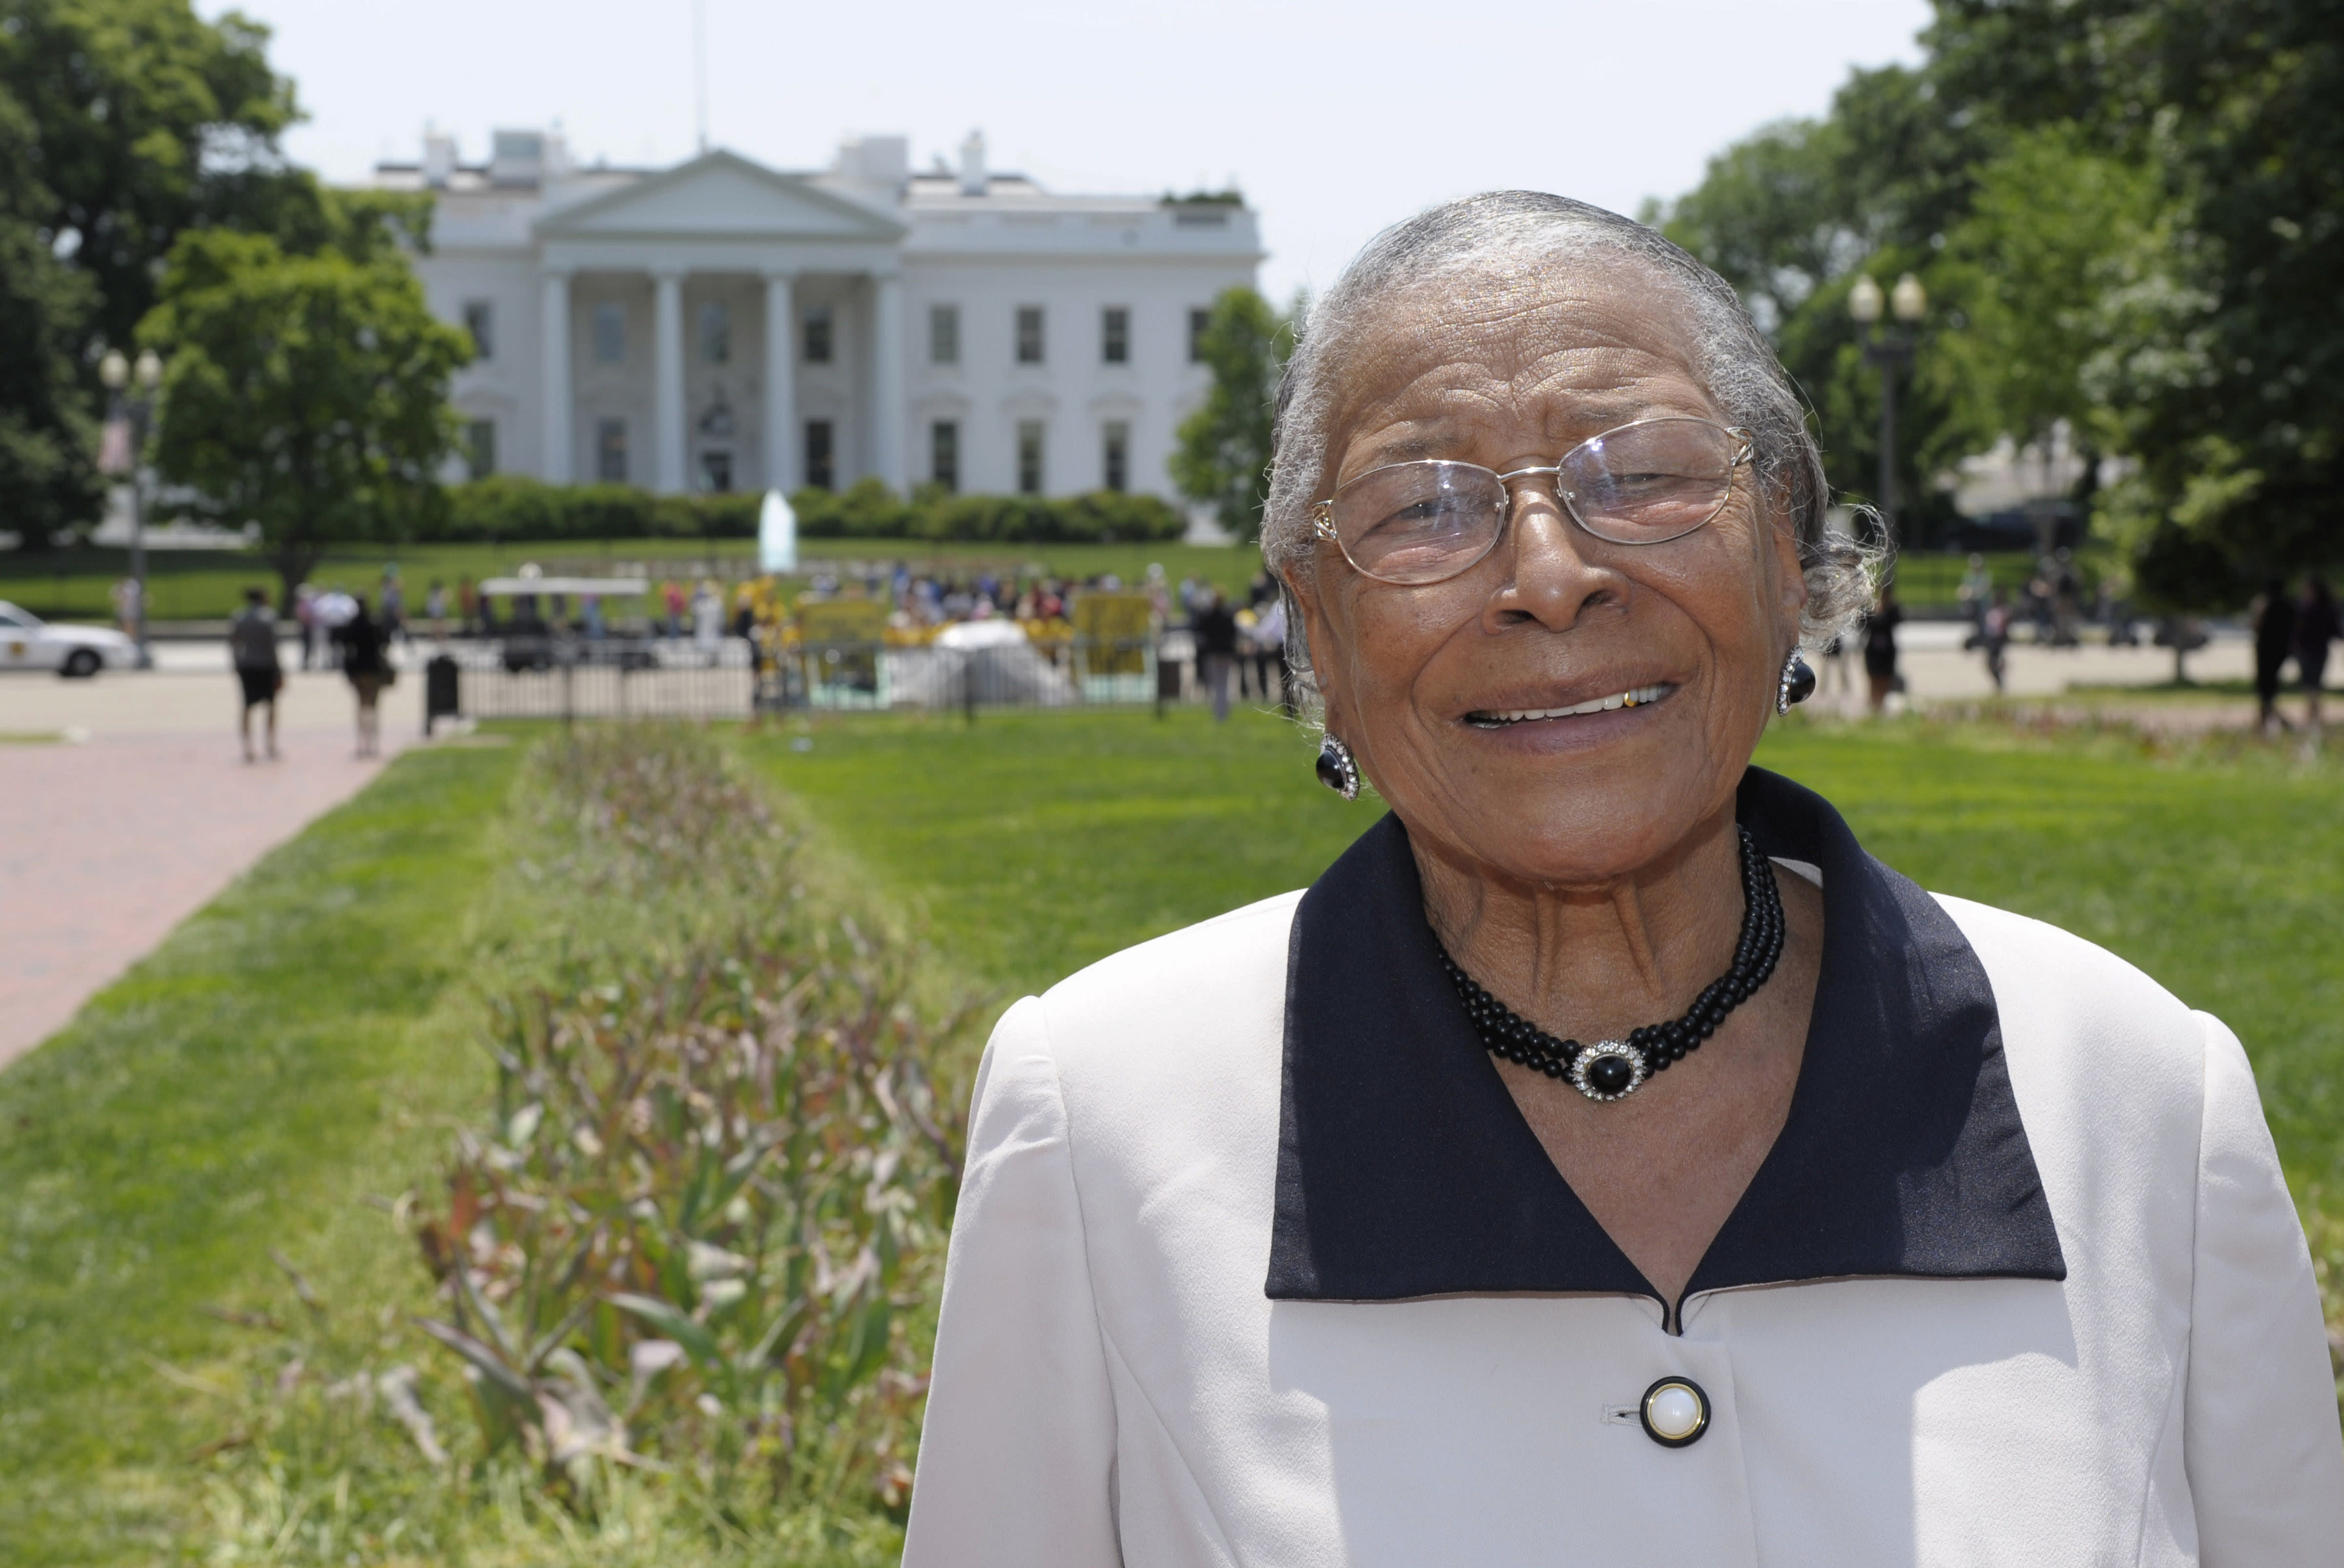 In this May 12, 2011 photo, Recy Taylor stands in Lafayette Park after touring the White House. Taylor, a black Alabama woman whose rape by six white men in 1944 drew national attention, died Dec. 28, 2017, according to her brother Robert Corbitt. She was 97. (Photo: AP/Susan Walsh, File)